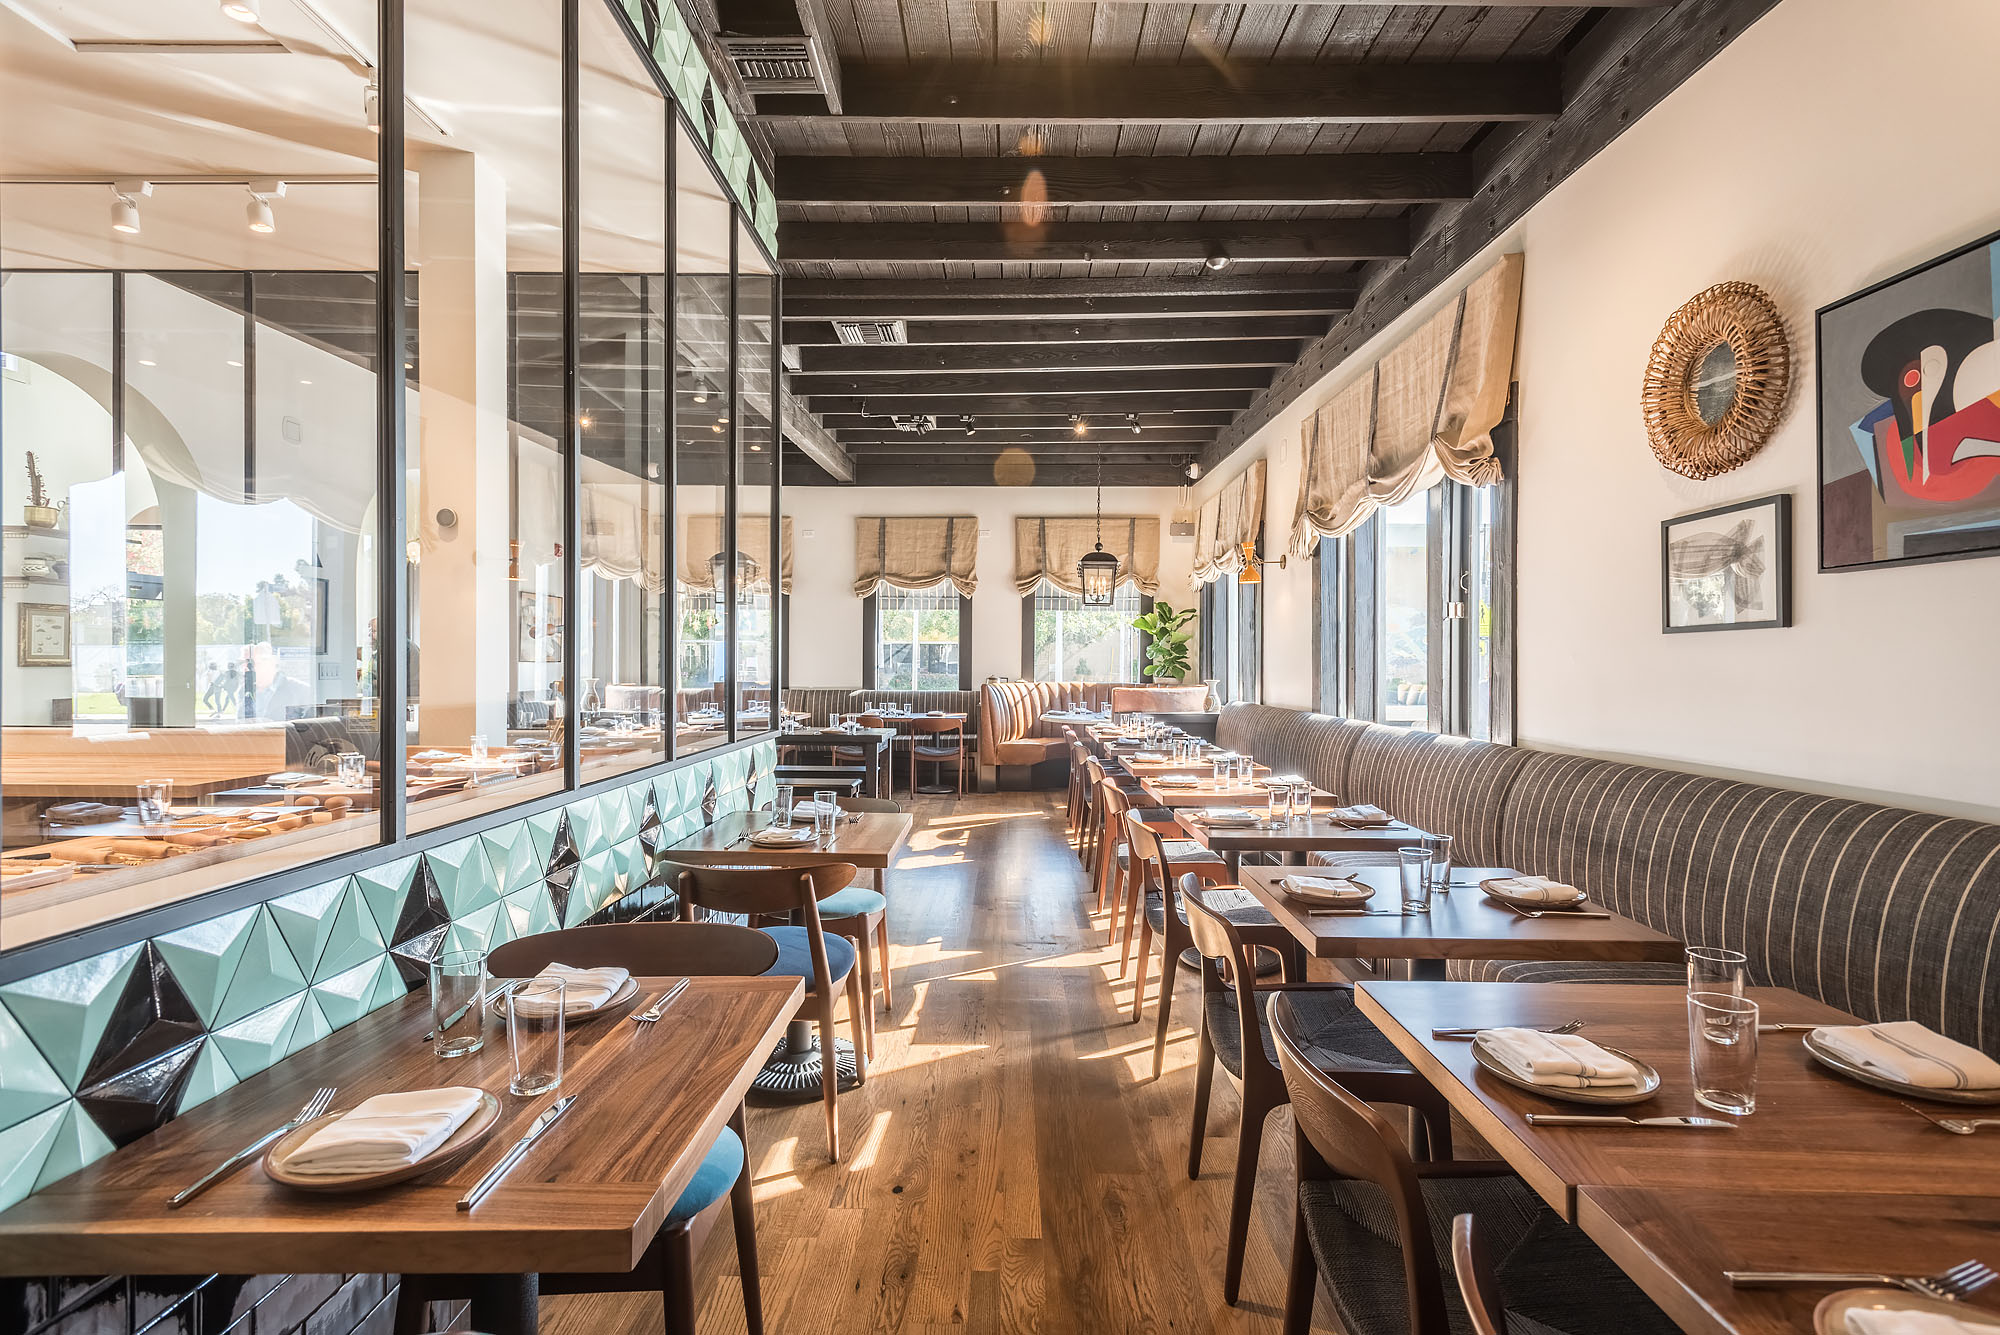 Evan funke chases pasta perfection at felix in venice